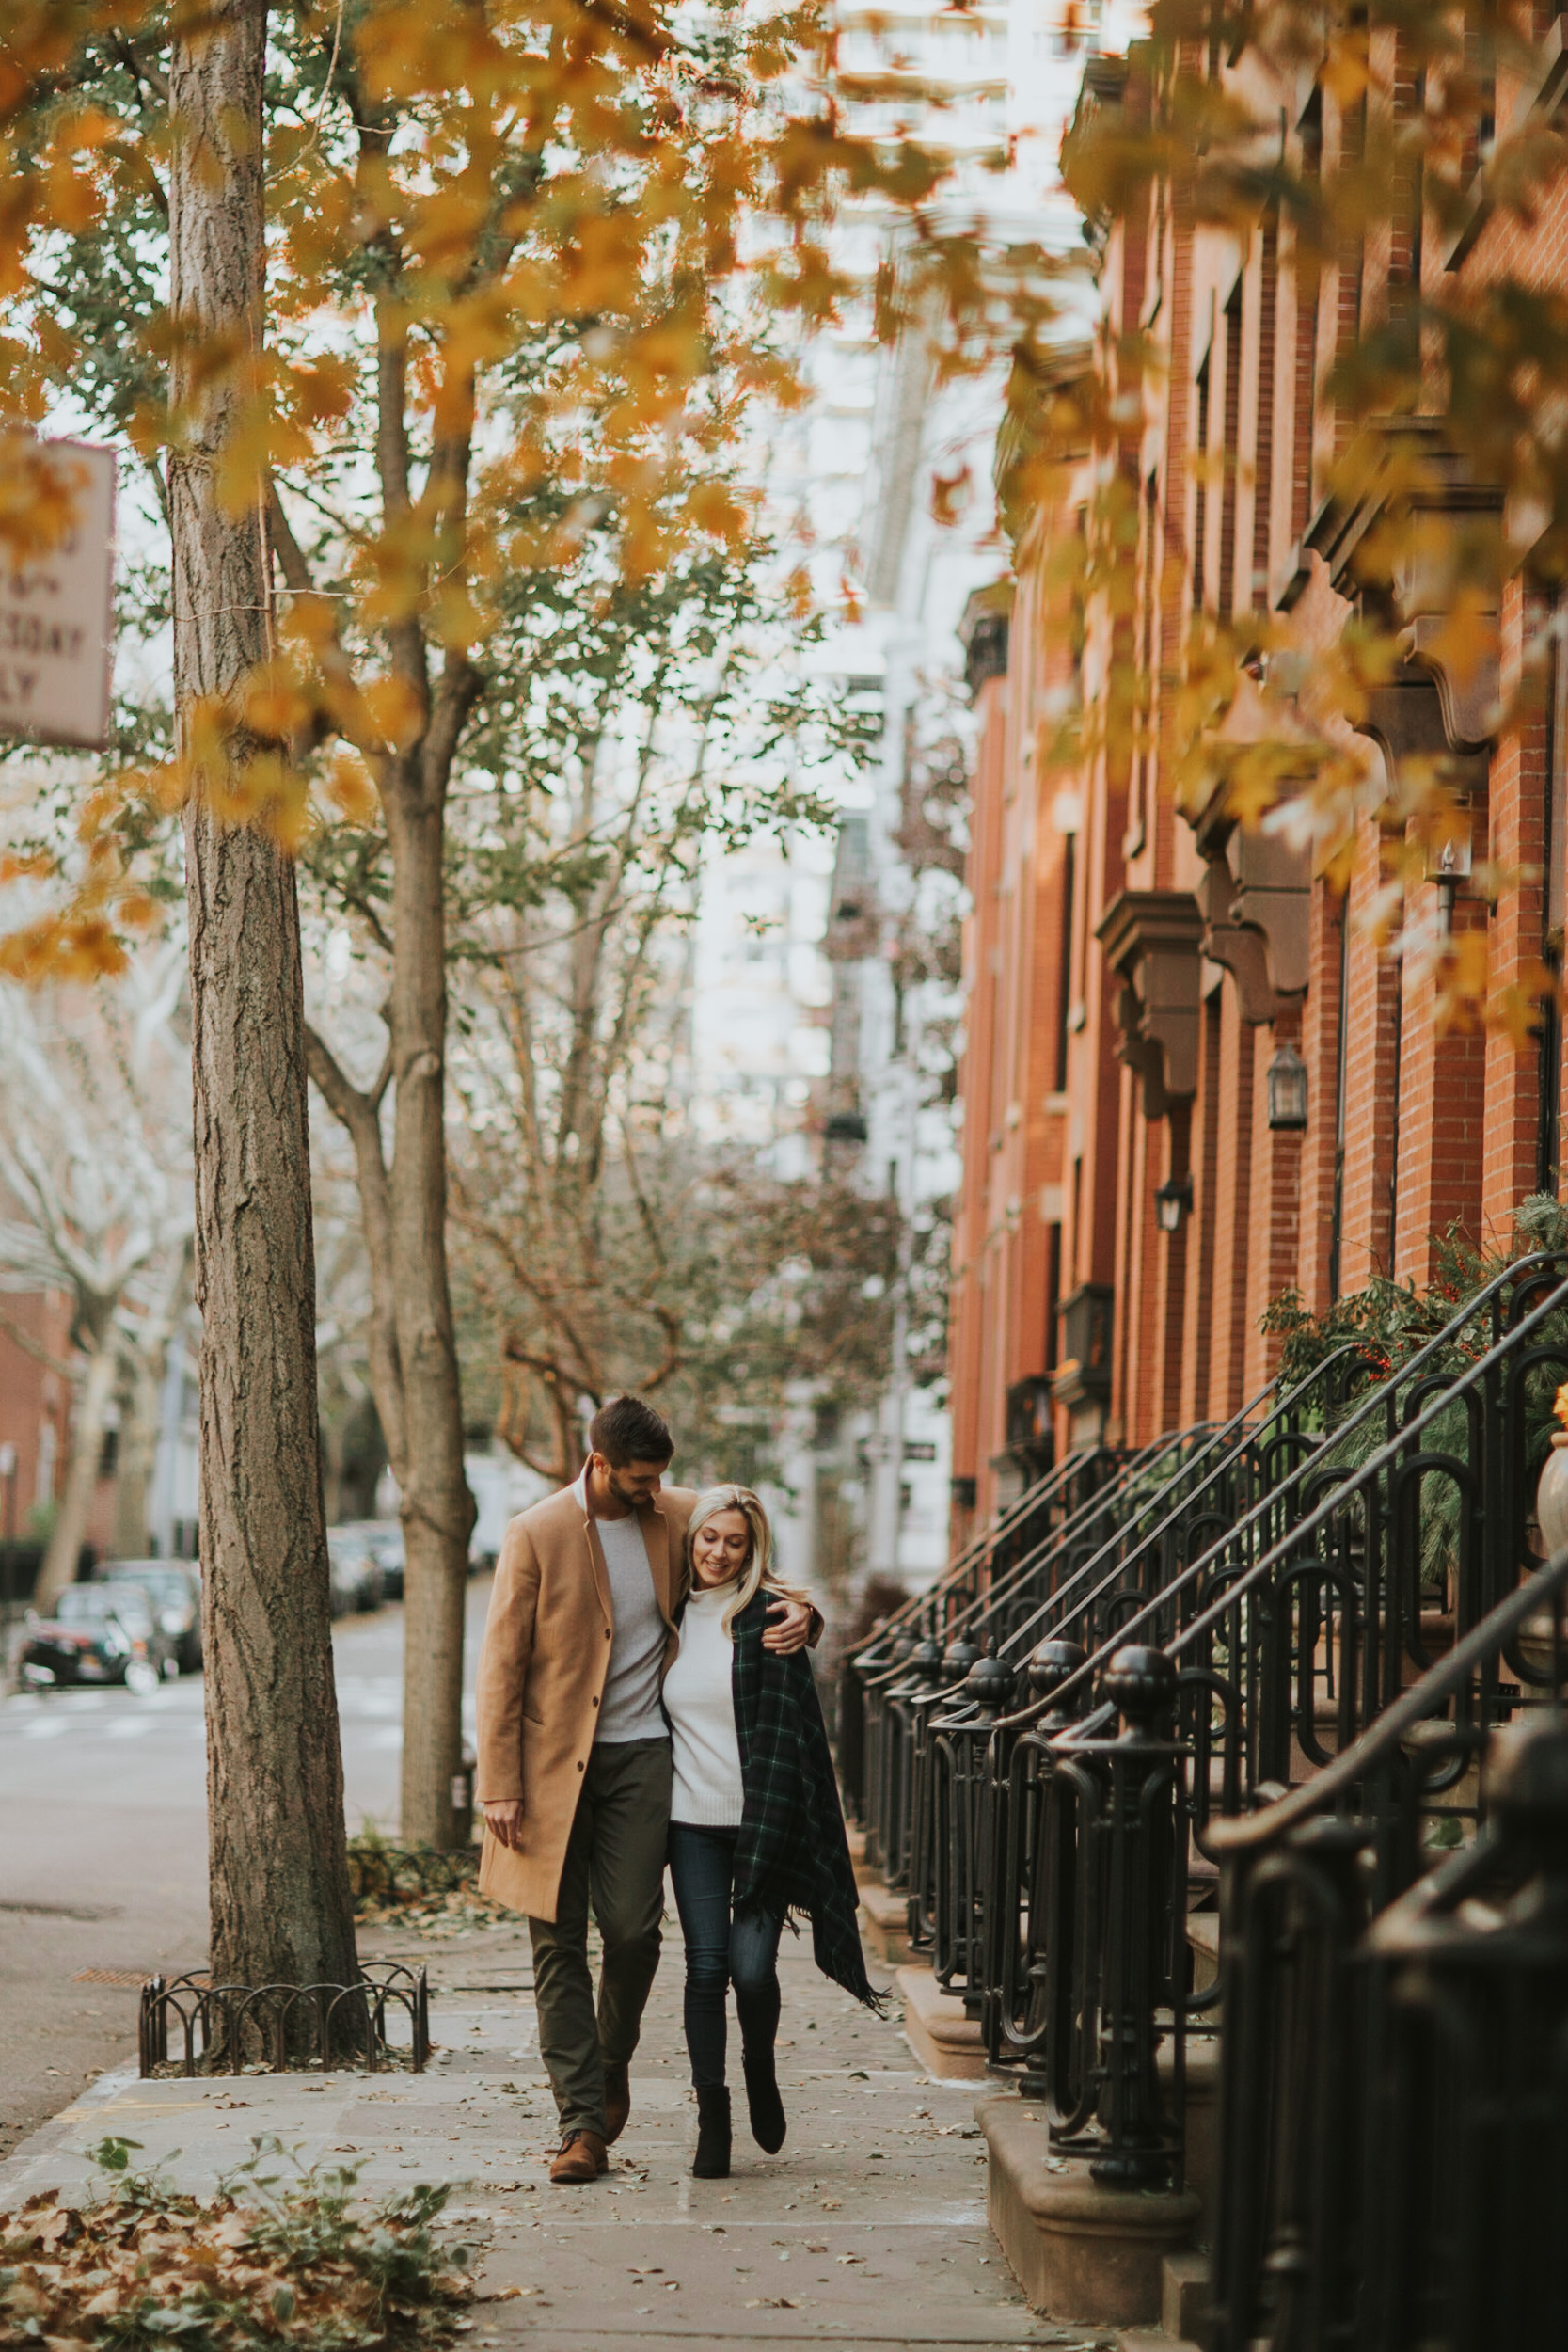 Colorful Fall NYC Engagement Session_Polly C Photography 1721151808.jpg